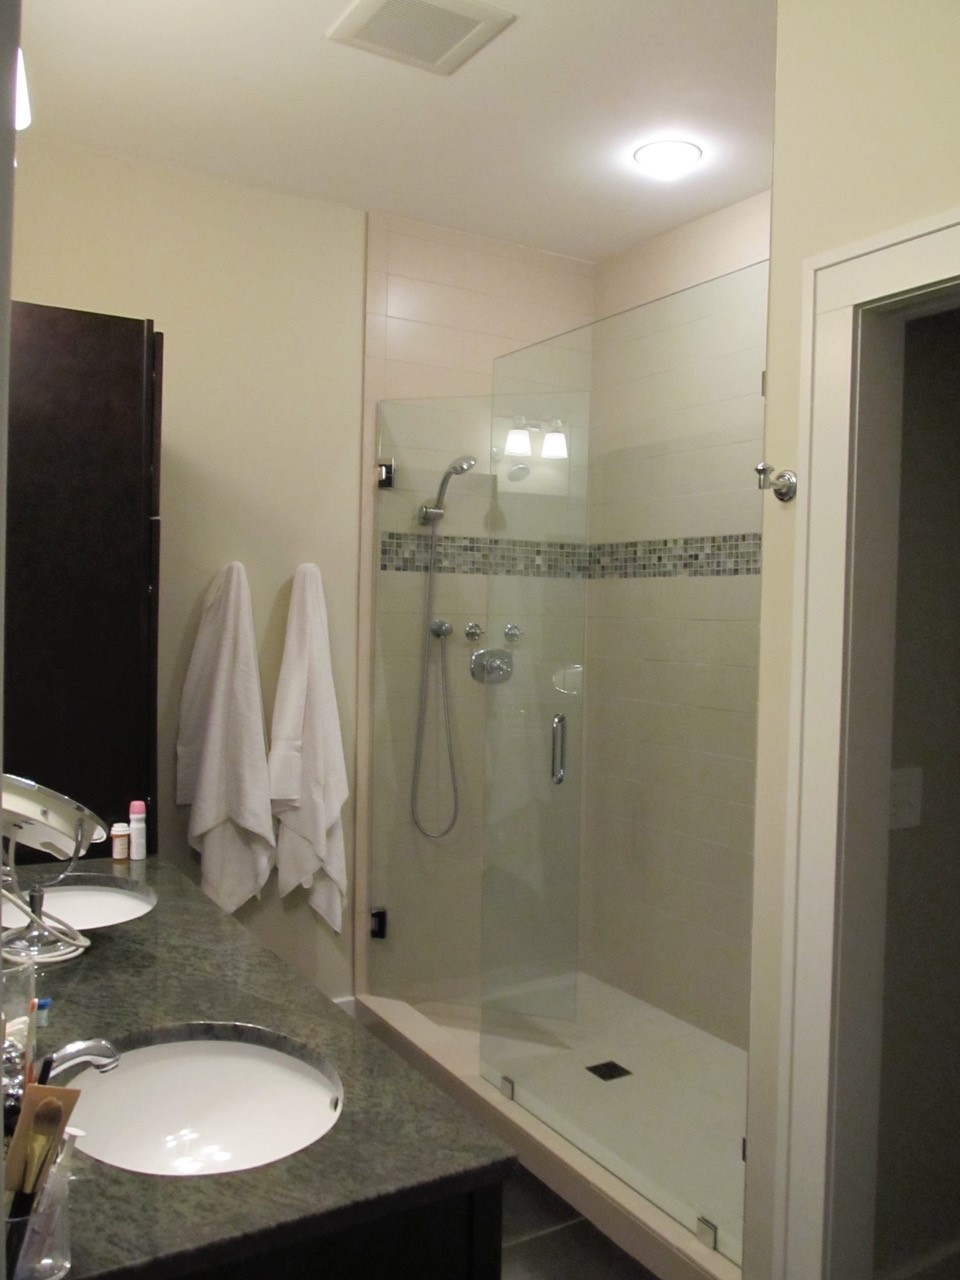 Bathroom Fixtures Grand Rapids Michigan heritage hill association apartment and home sales list 9/27/2017